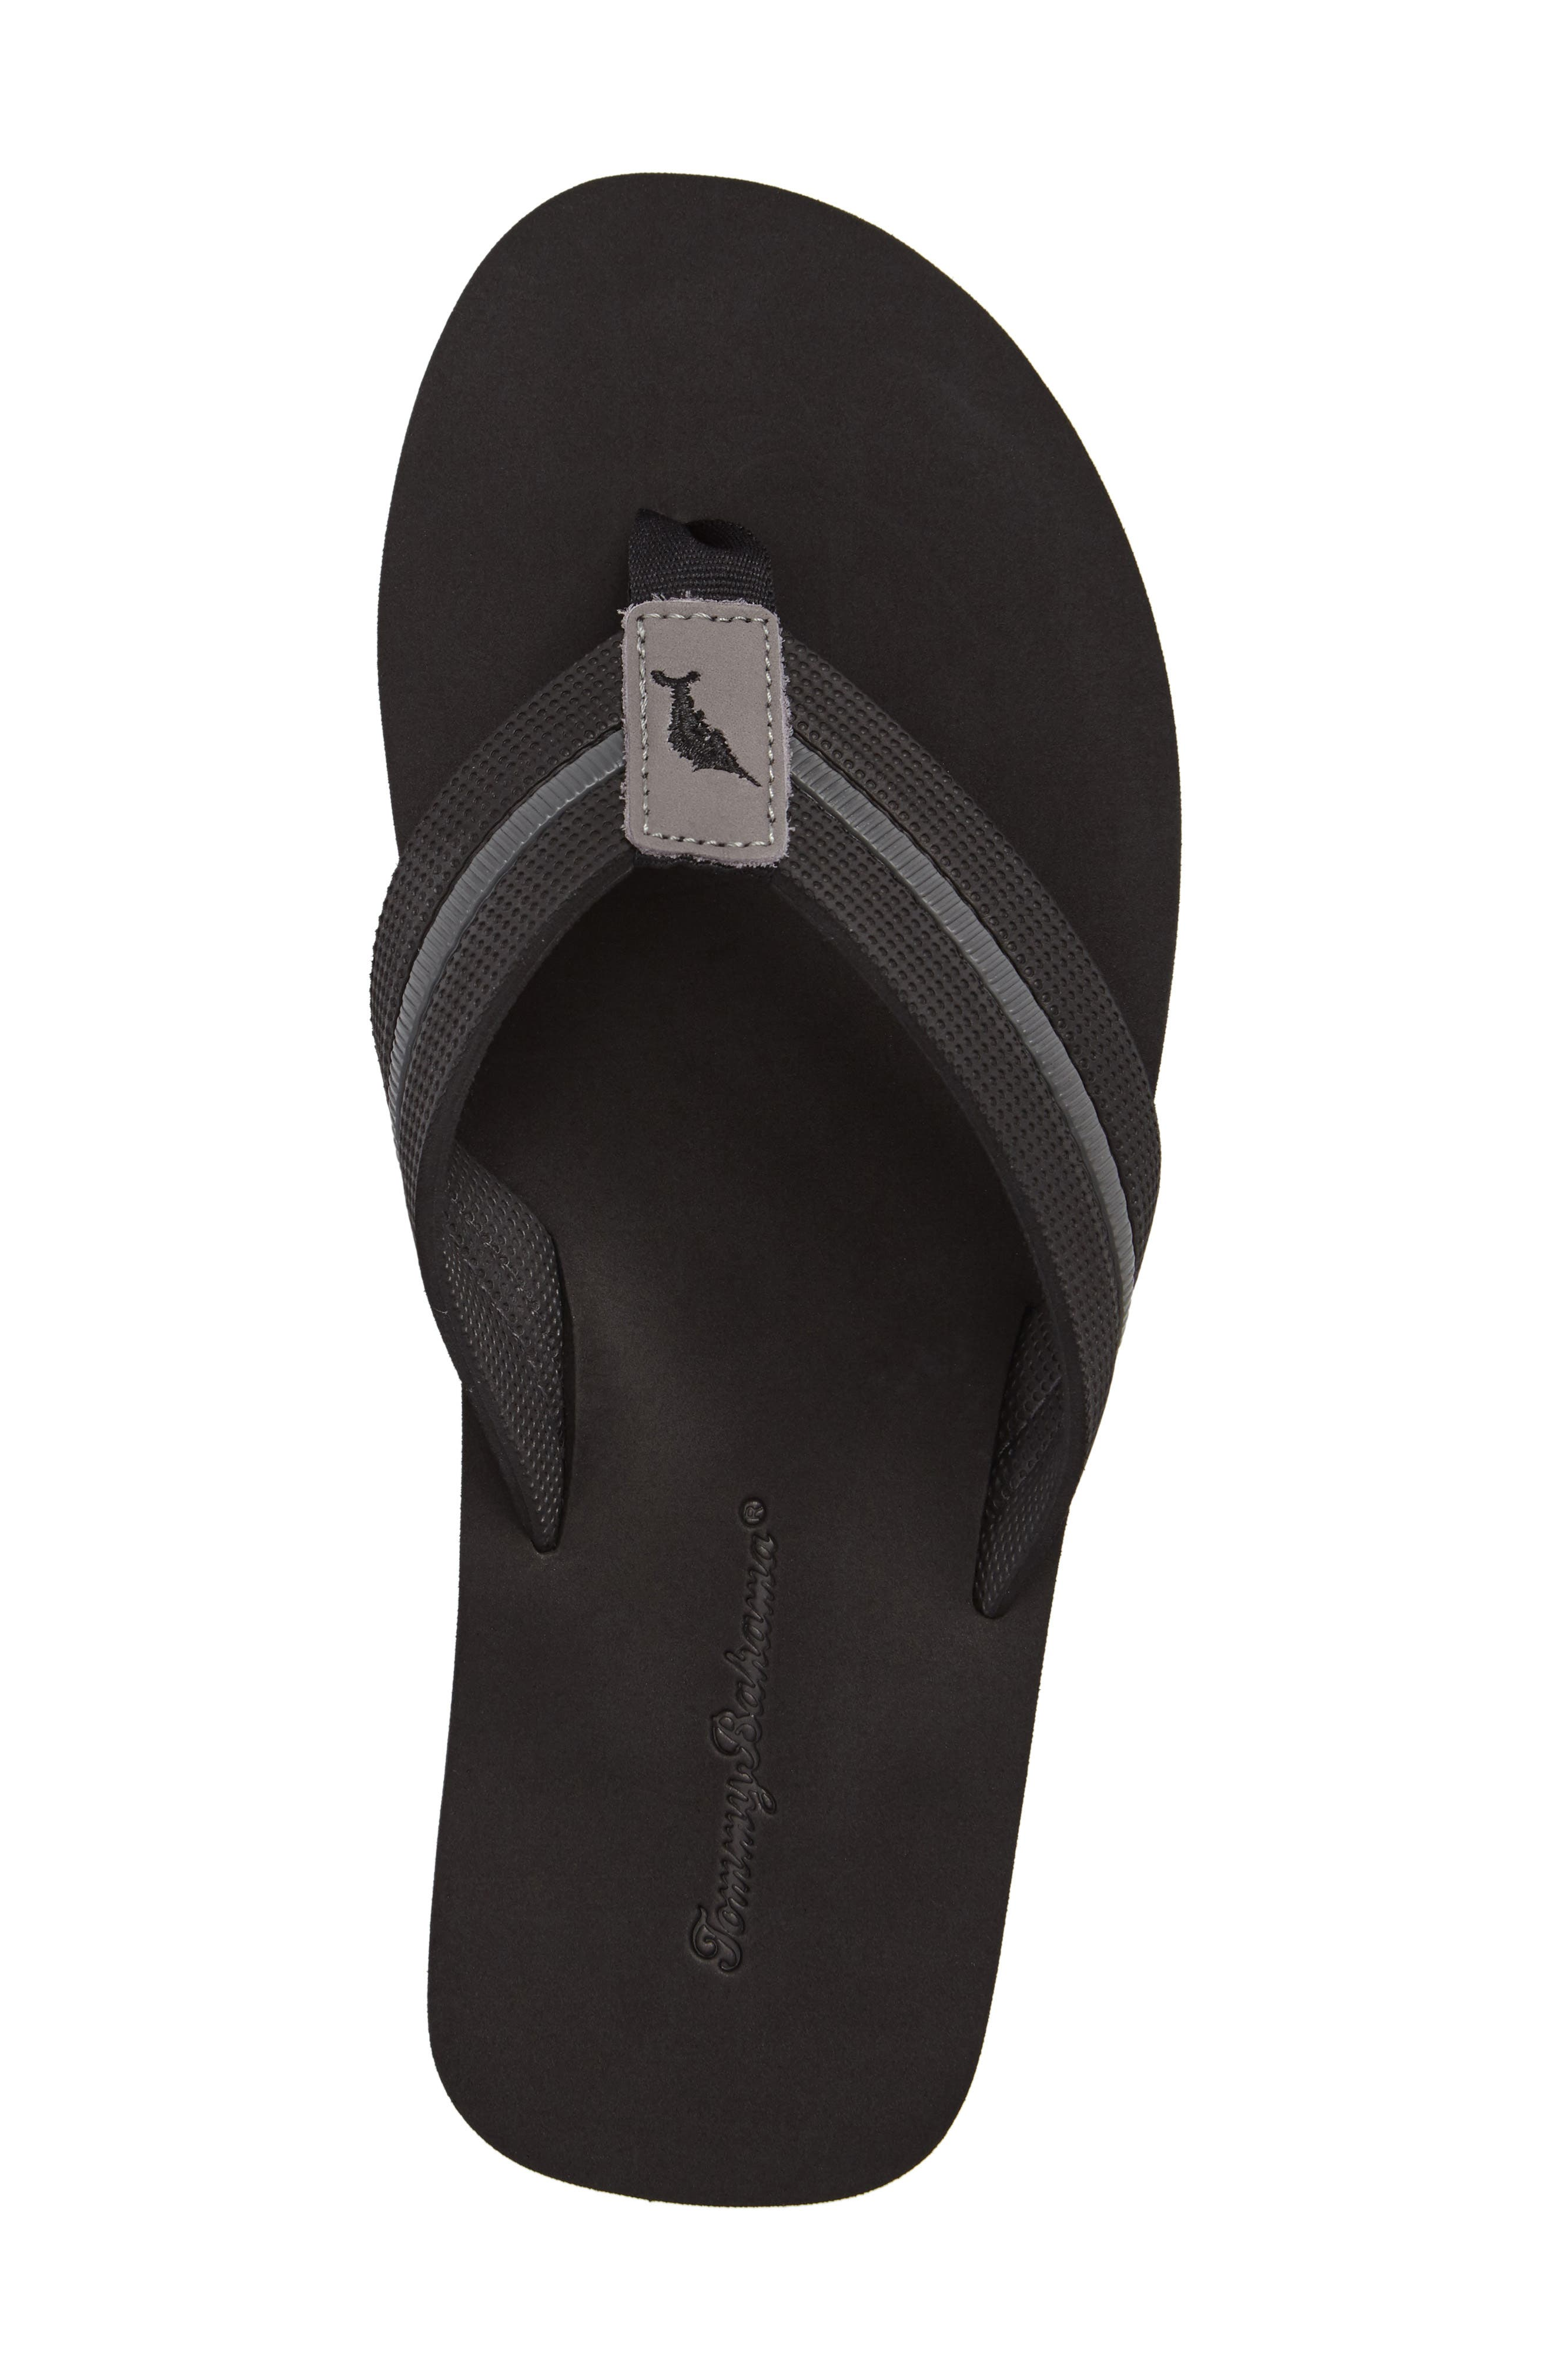 Taheeti Flip Flop,                             Alternate thumbnail 5, color,                             BLACK